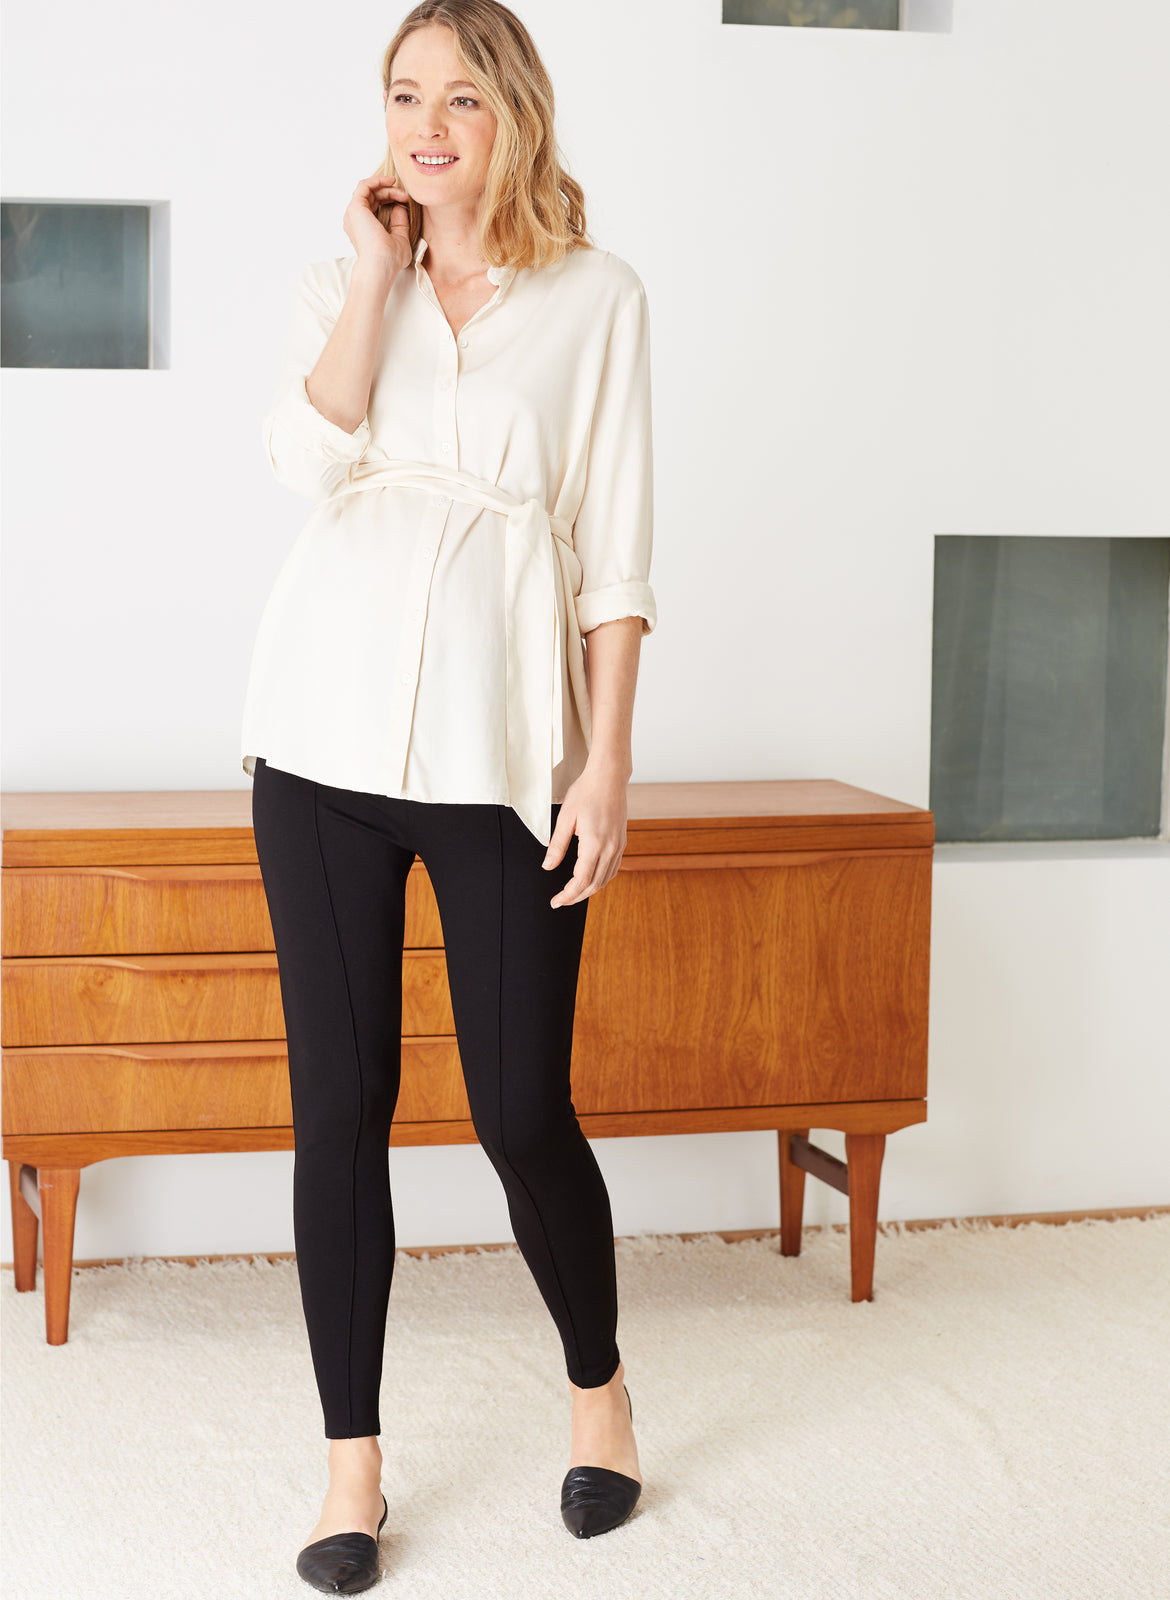 dae748db7ebb90 Over the Bump Maternity Treggings – Isabella Oliver US